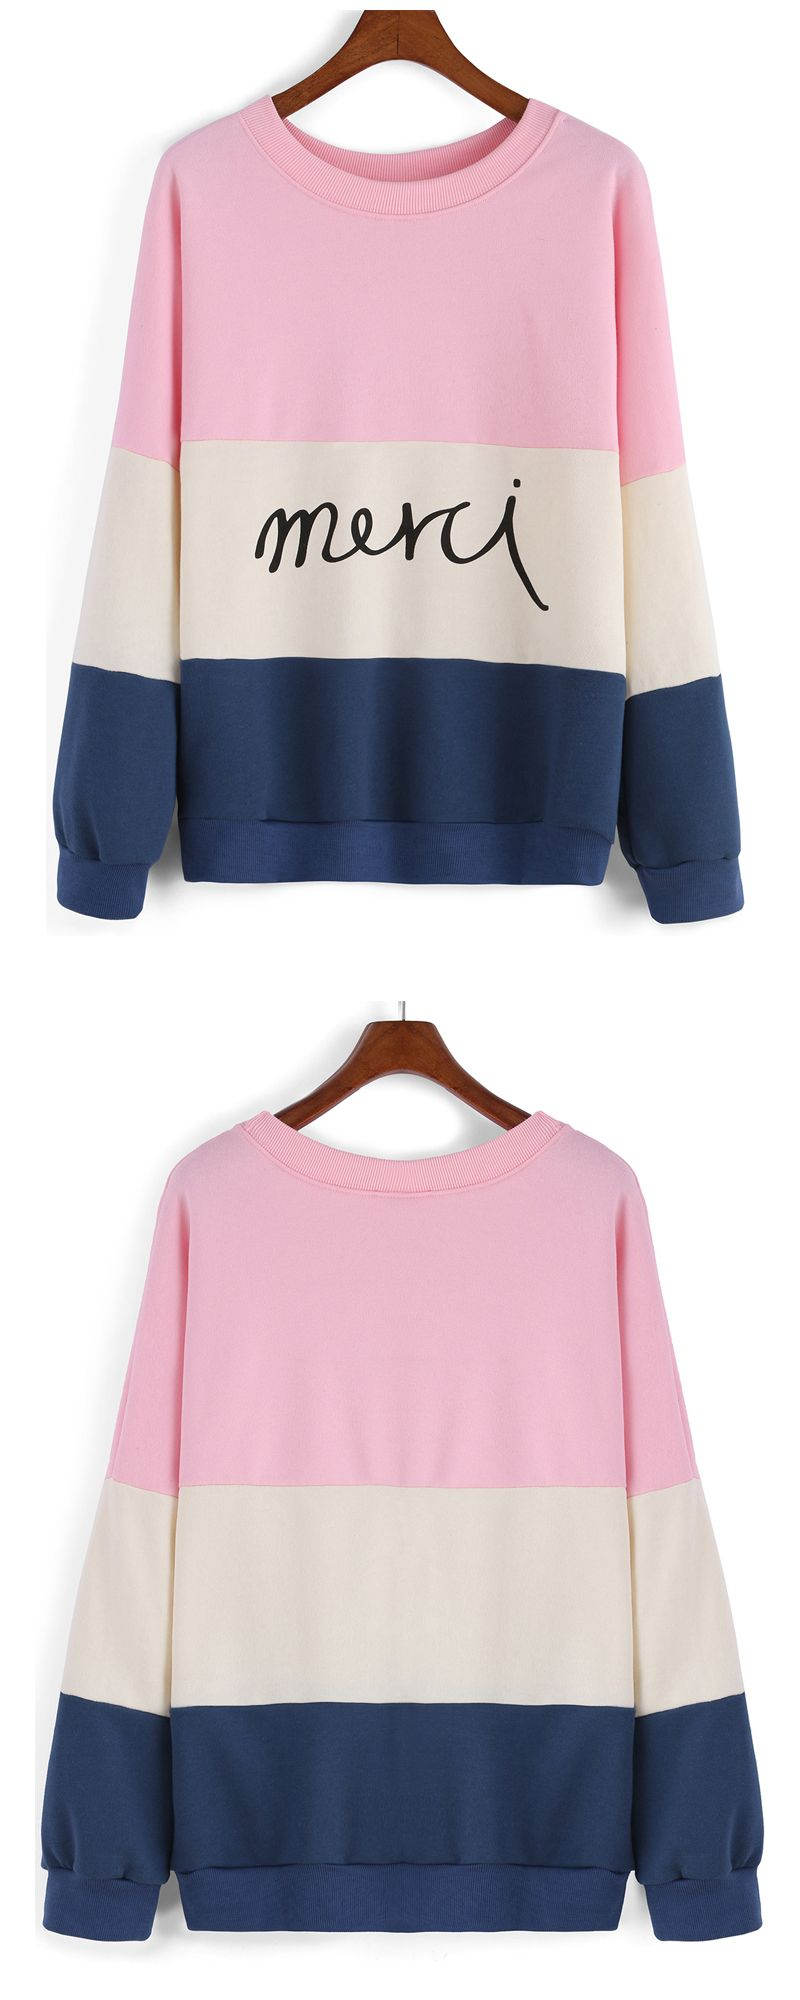 Sweatshirt Has Been A MustHave For Fashion Dressers Letter Print